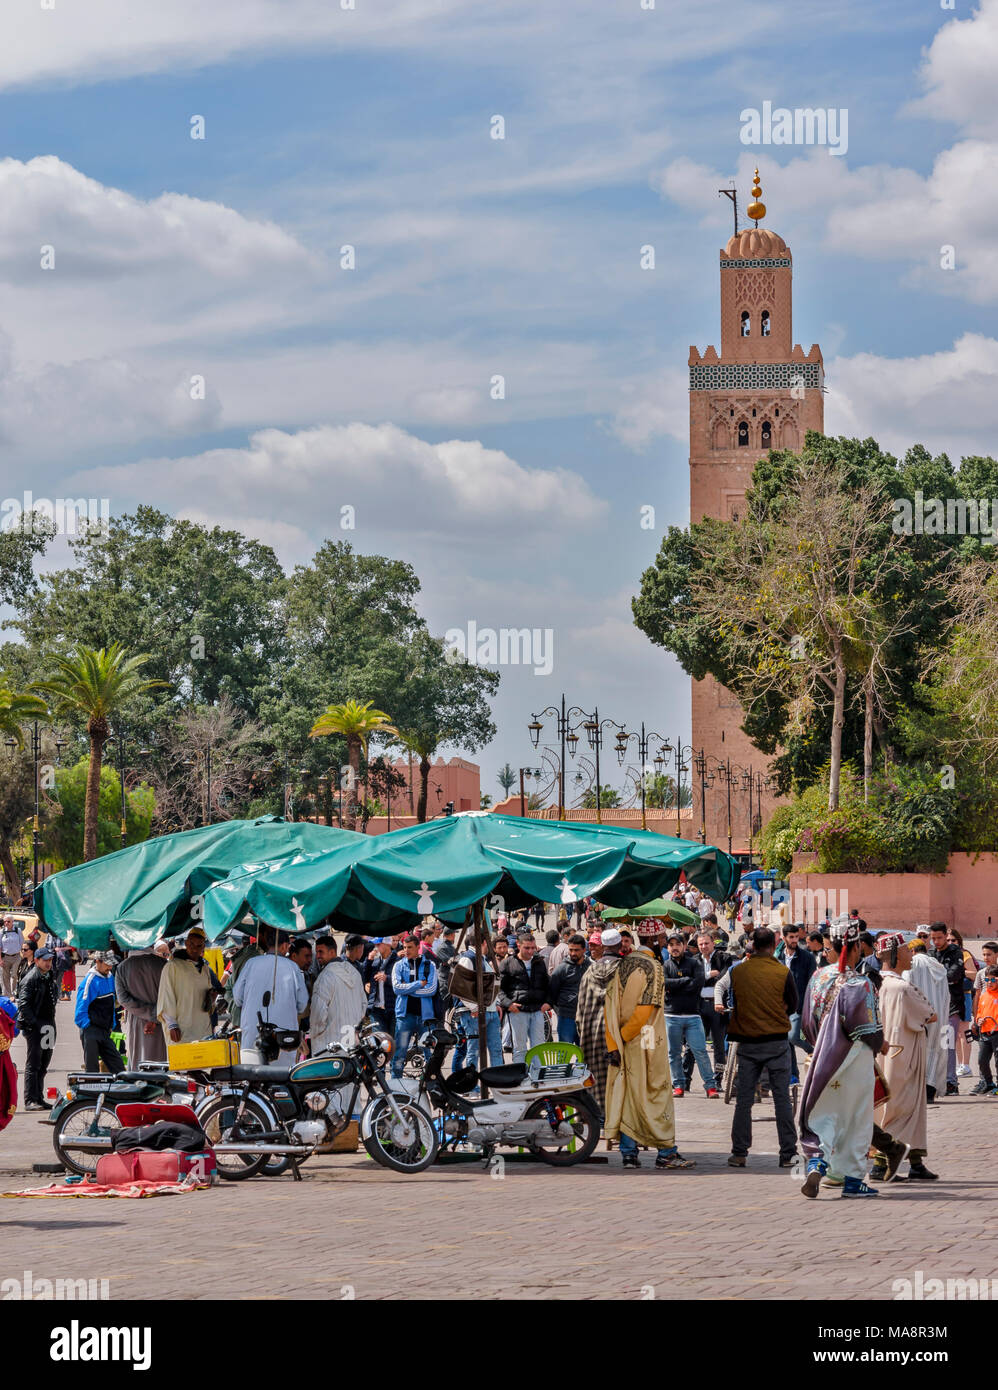 MOROCCO MARRAKECH ENTERTAINERS AND CROWDS PLACE JEMAA EL FNA AND THE KOUTOUBIA TOWER - Stock Image